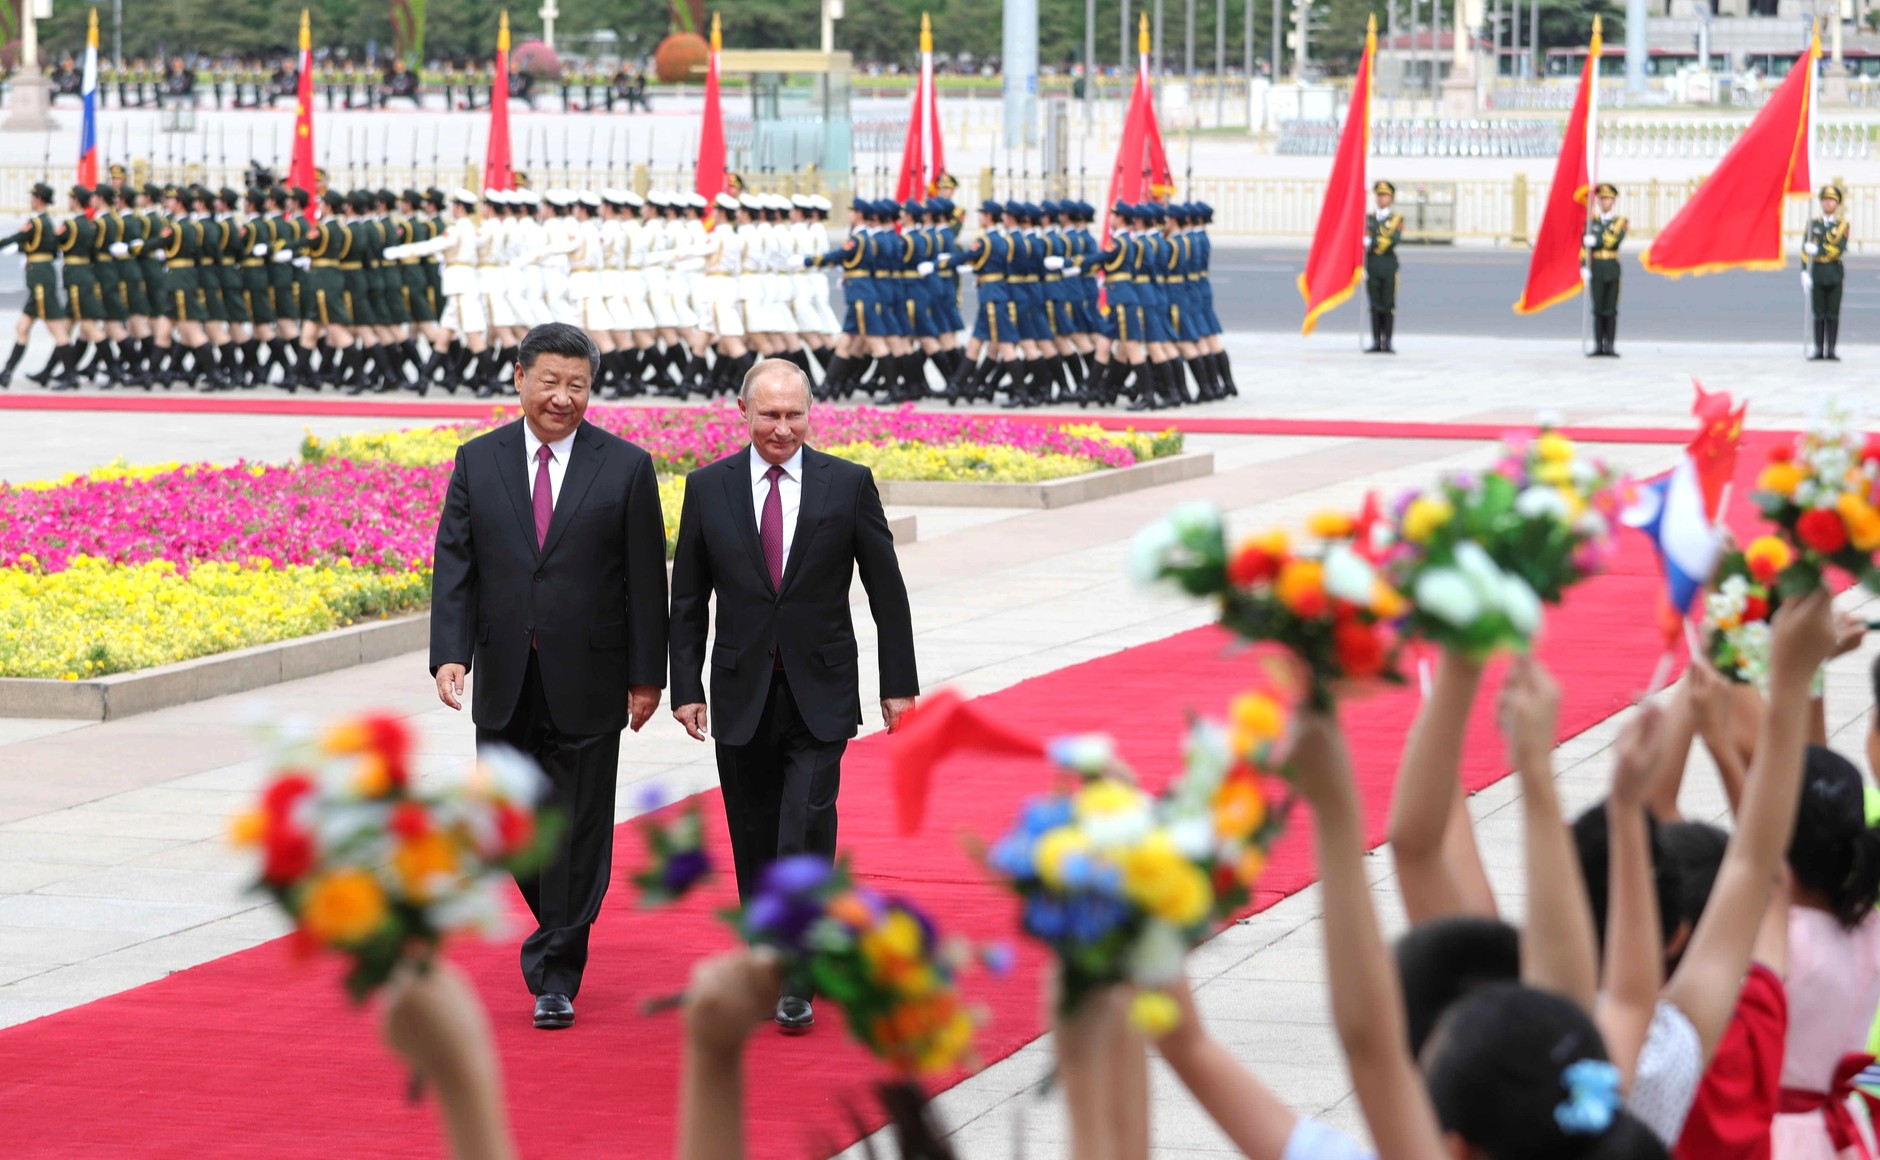 File:The President of Russia arrived in China on a state visit. 01.jpg - Wikimedia Commons